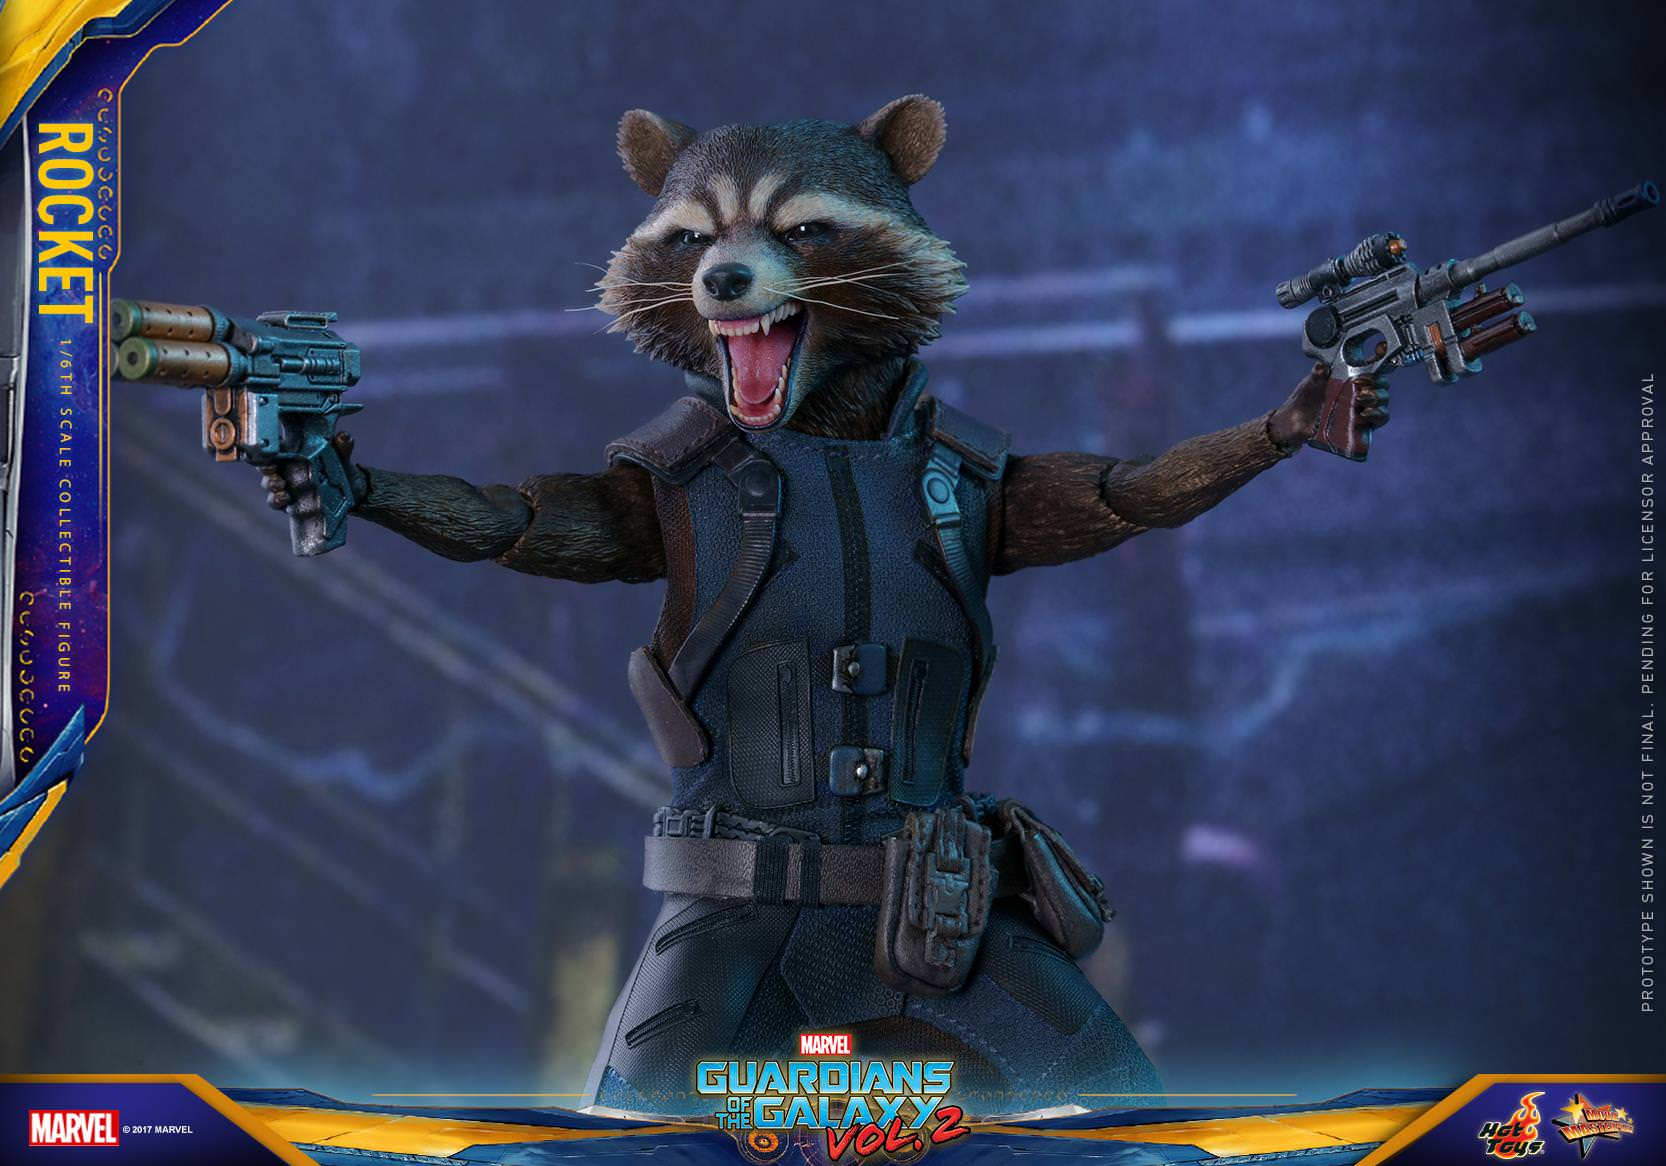 Hot Toys Mms 410 Guardians Of The Galaxy 2 Rocket Raccoon Super Deluxe Vinyl Figure Are Back Star Lords Gang Misfits Will Continue Their Saving Adventures While Exchanging Banter With Each Other In Upcoming